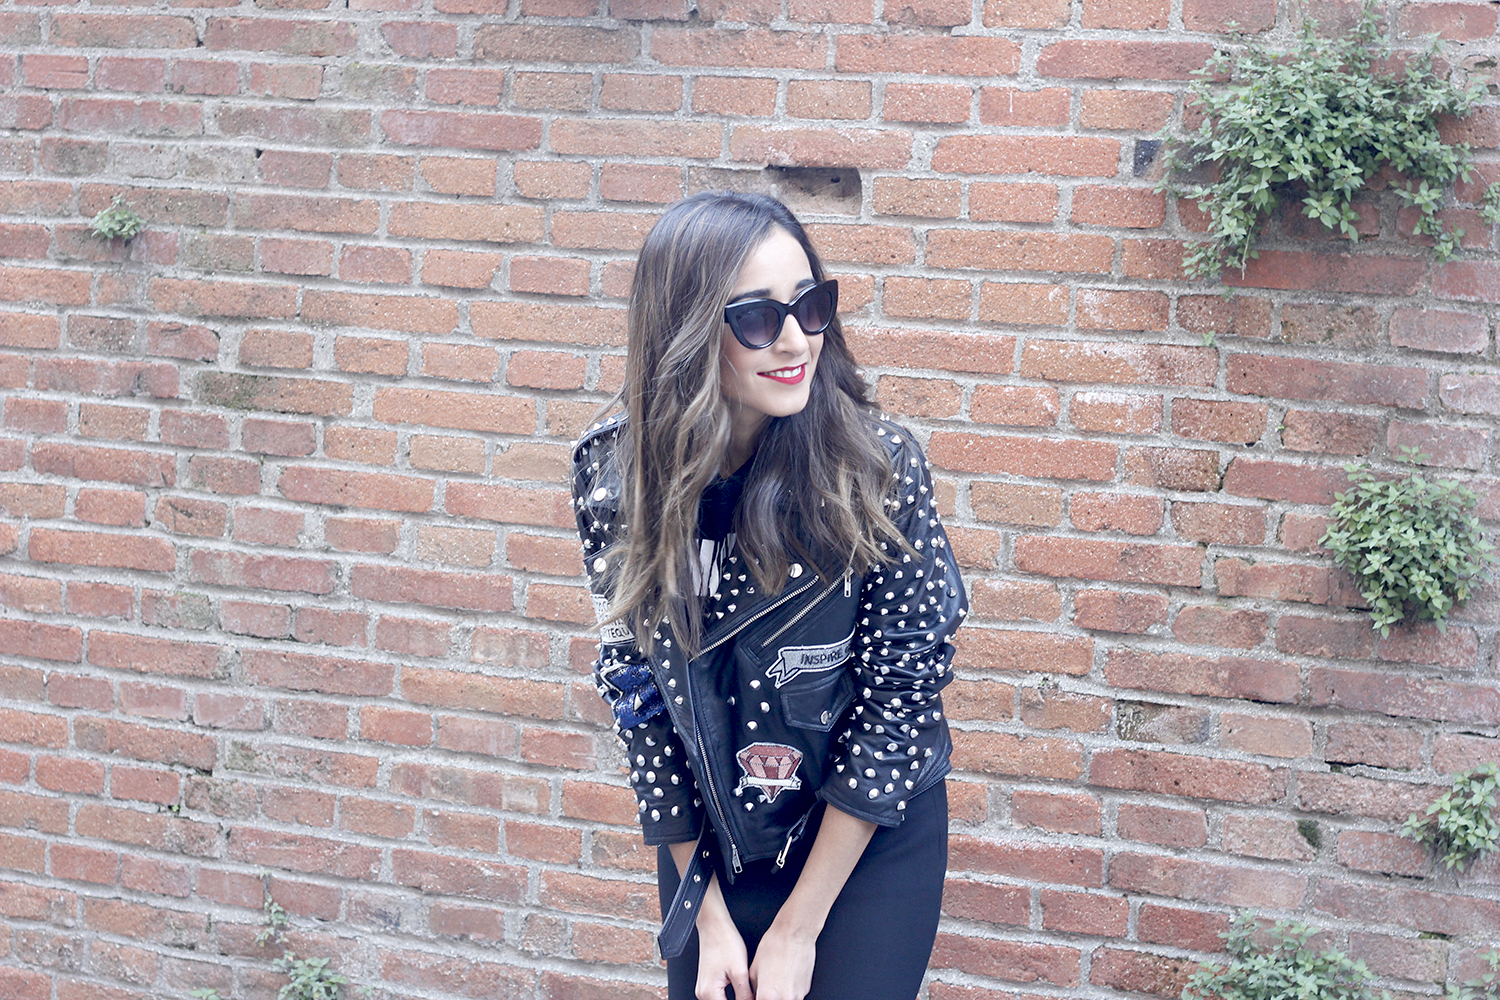 Leather jacket with studs and patches black skirt heels style fashion outfit15